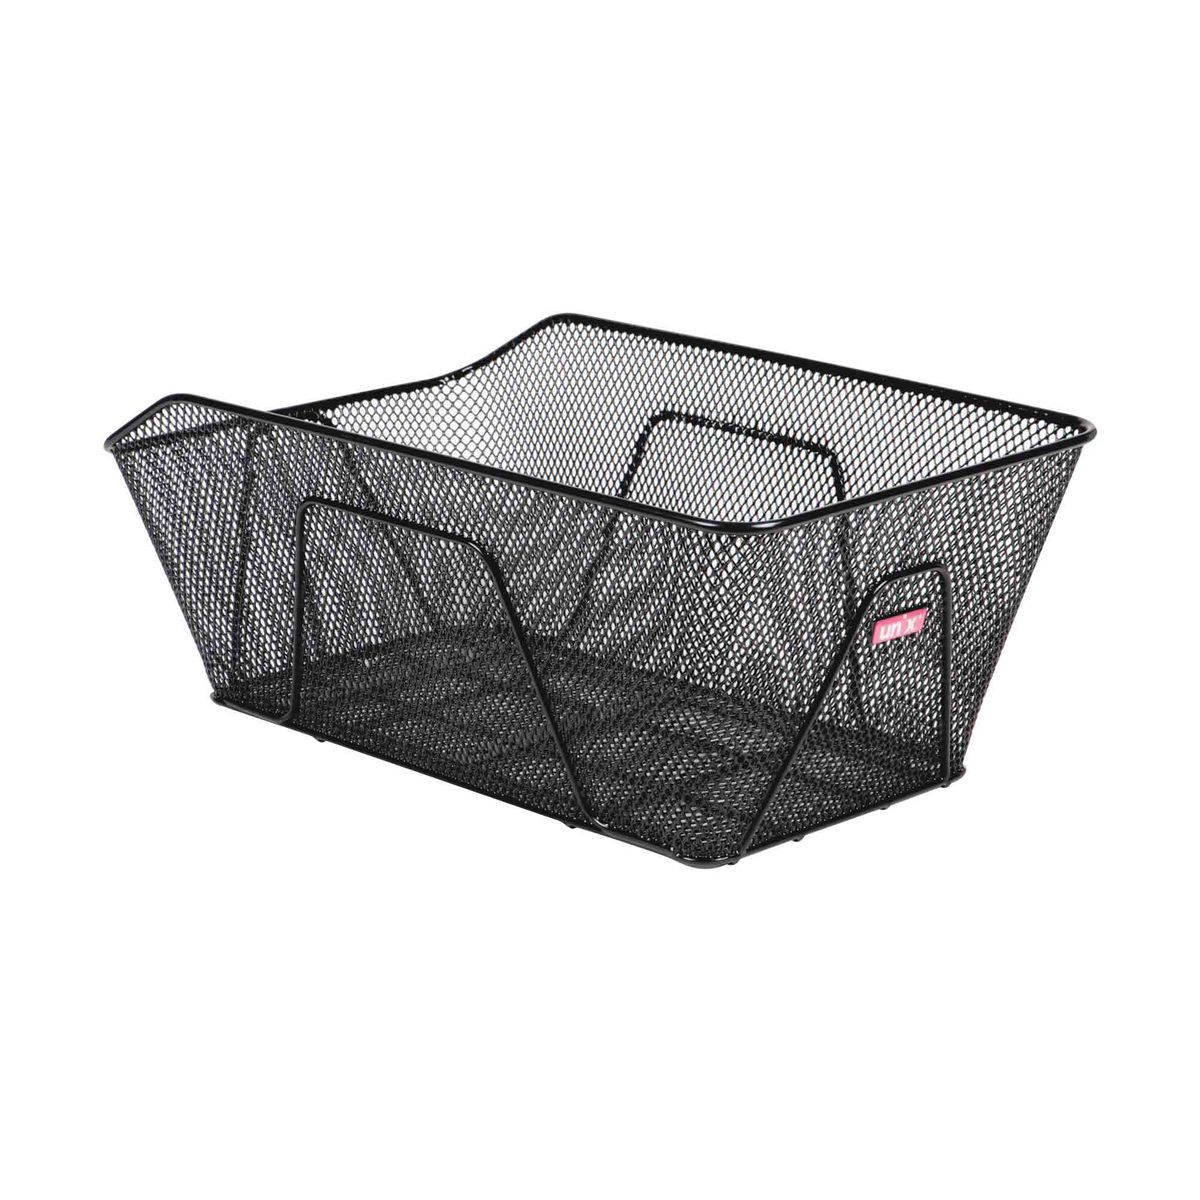 Unix ROSANO rear bicycle basket for permanent installation | item_misc